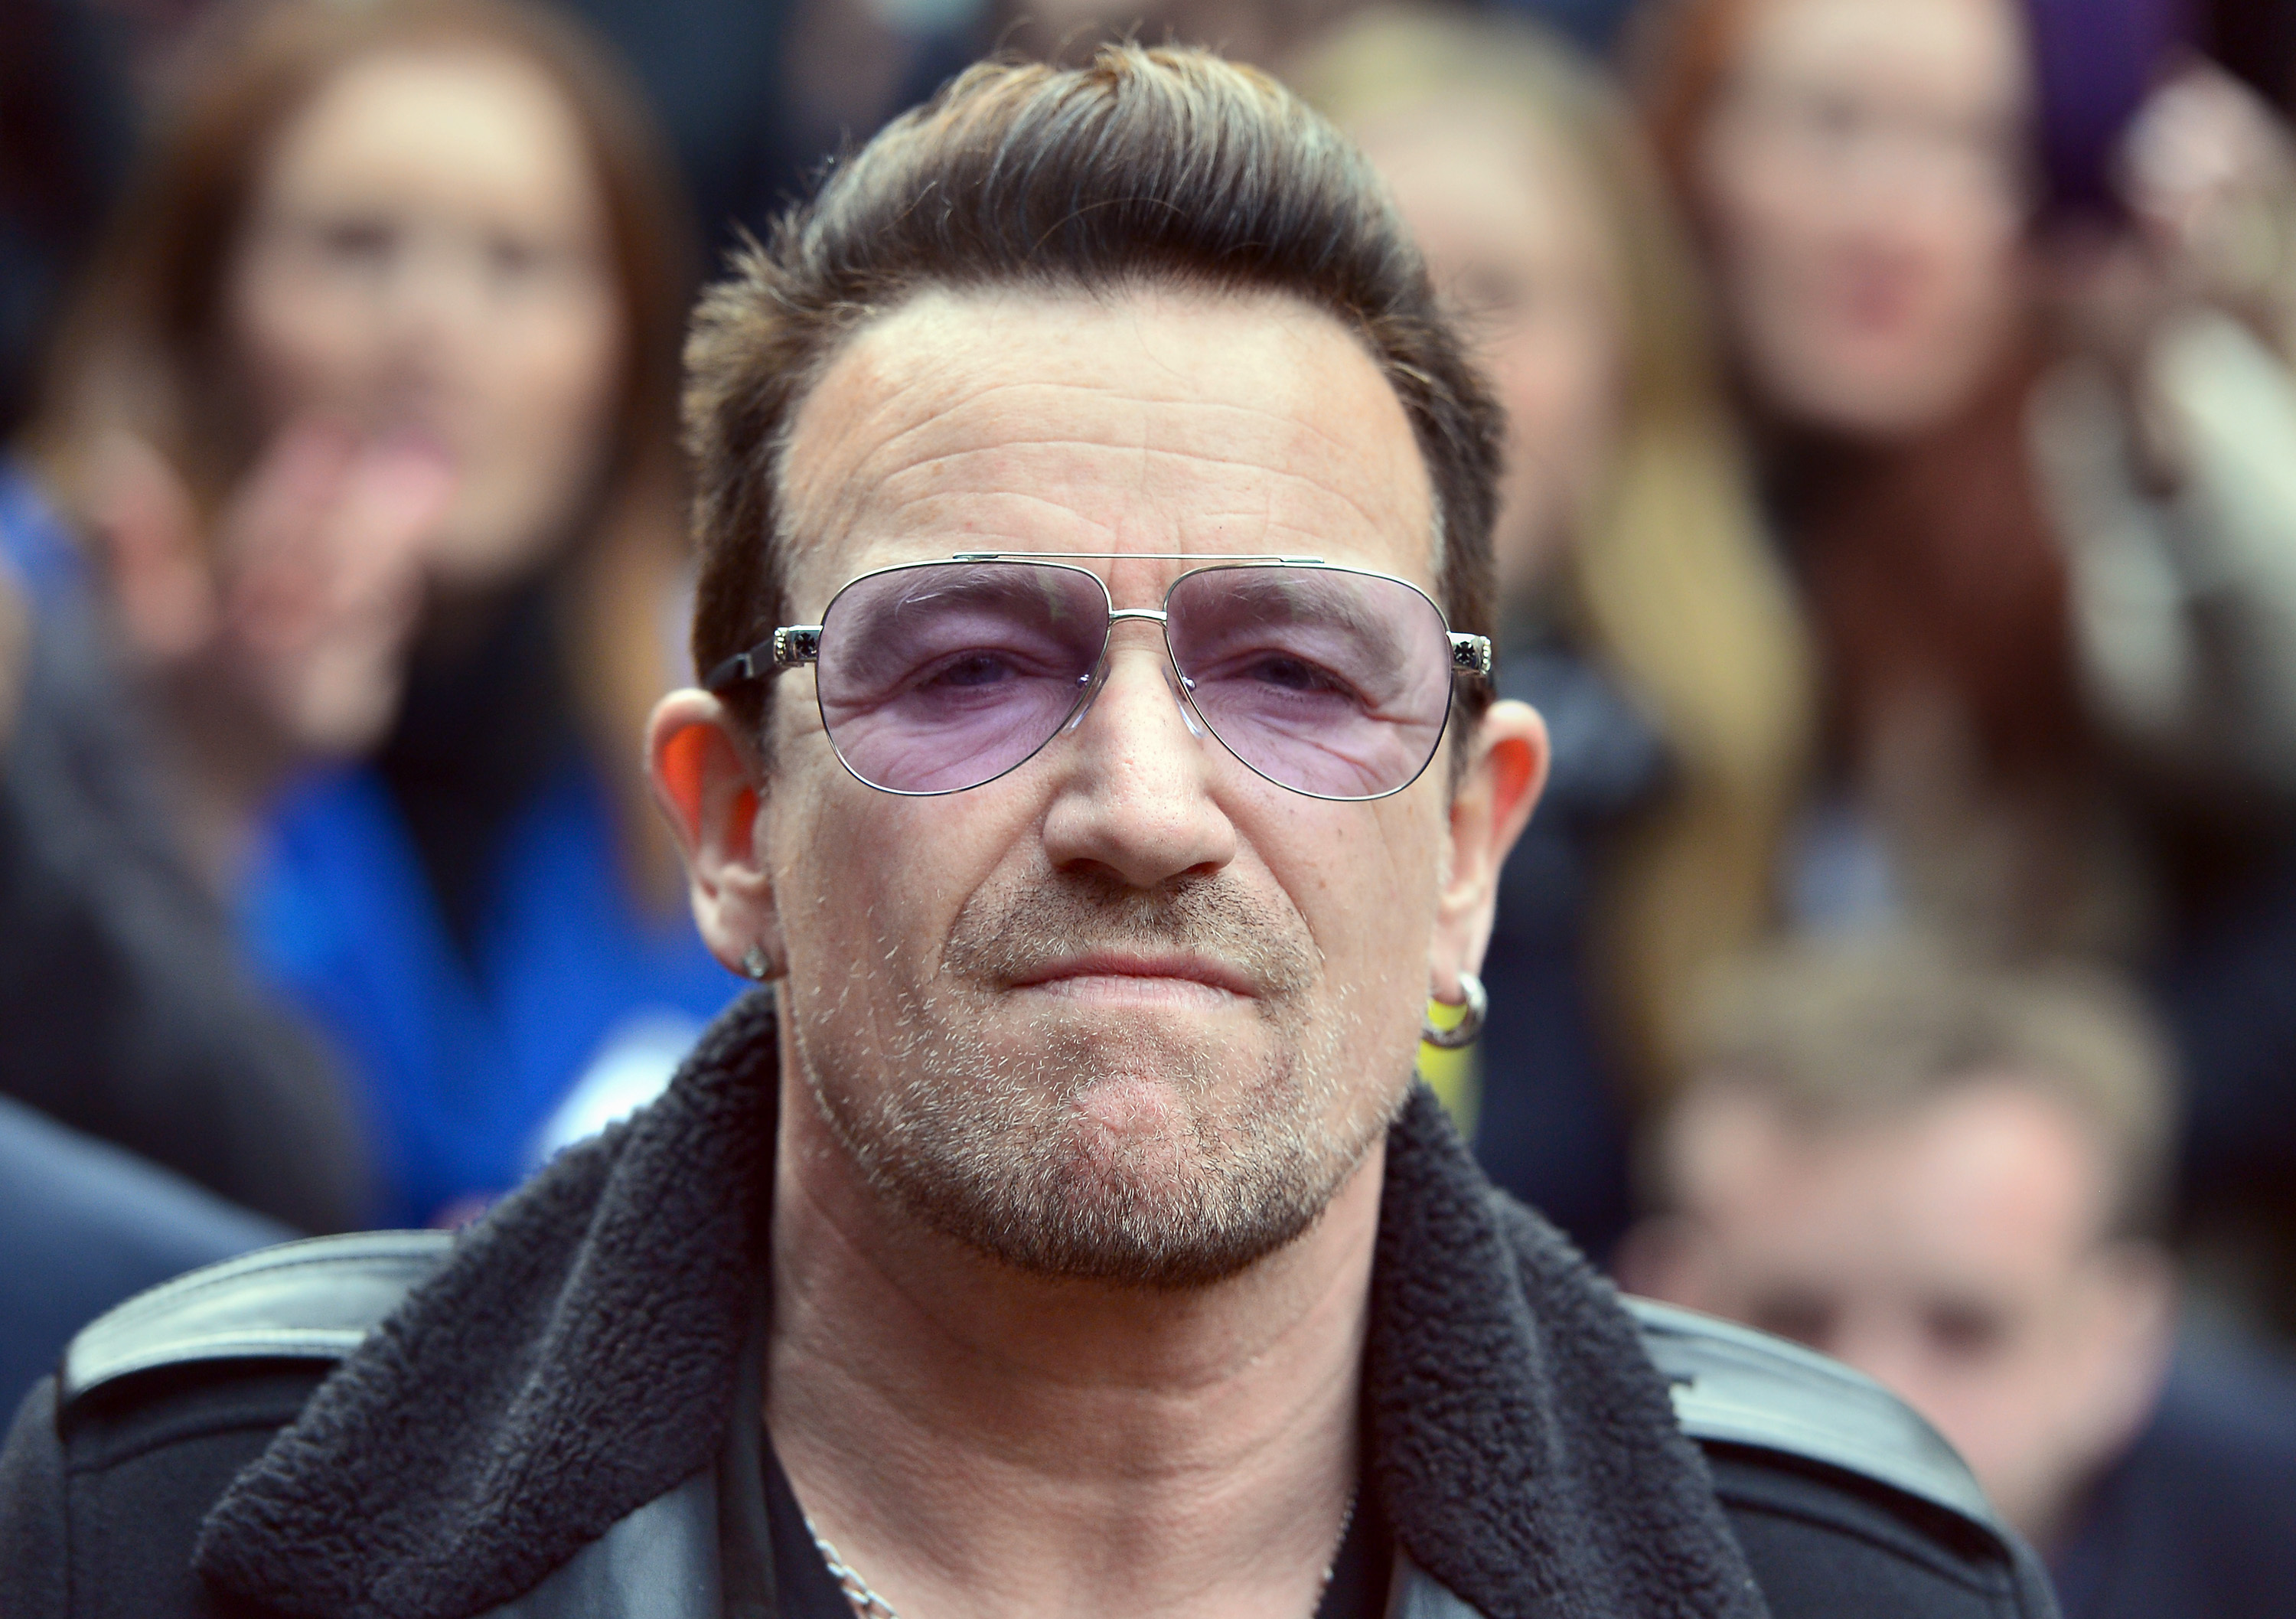 Bono of U2 arrives for the recording of the Band Aid 30 single at Sarm Studios in Notting Hill, London, Saturday November 15, 2014.